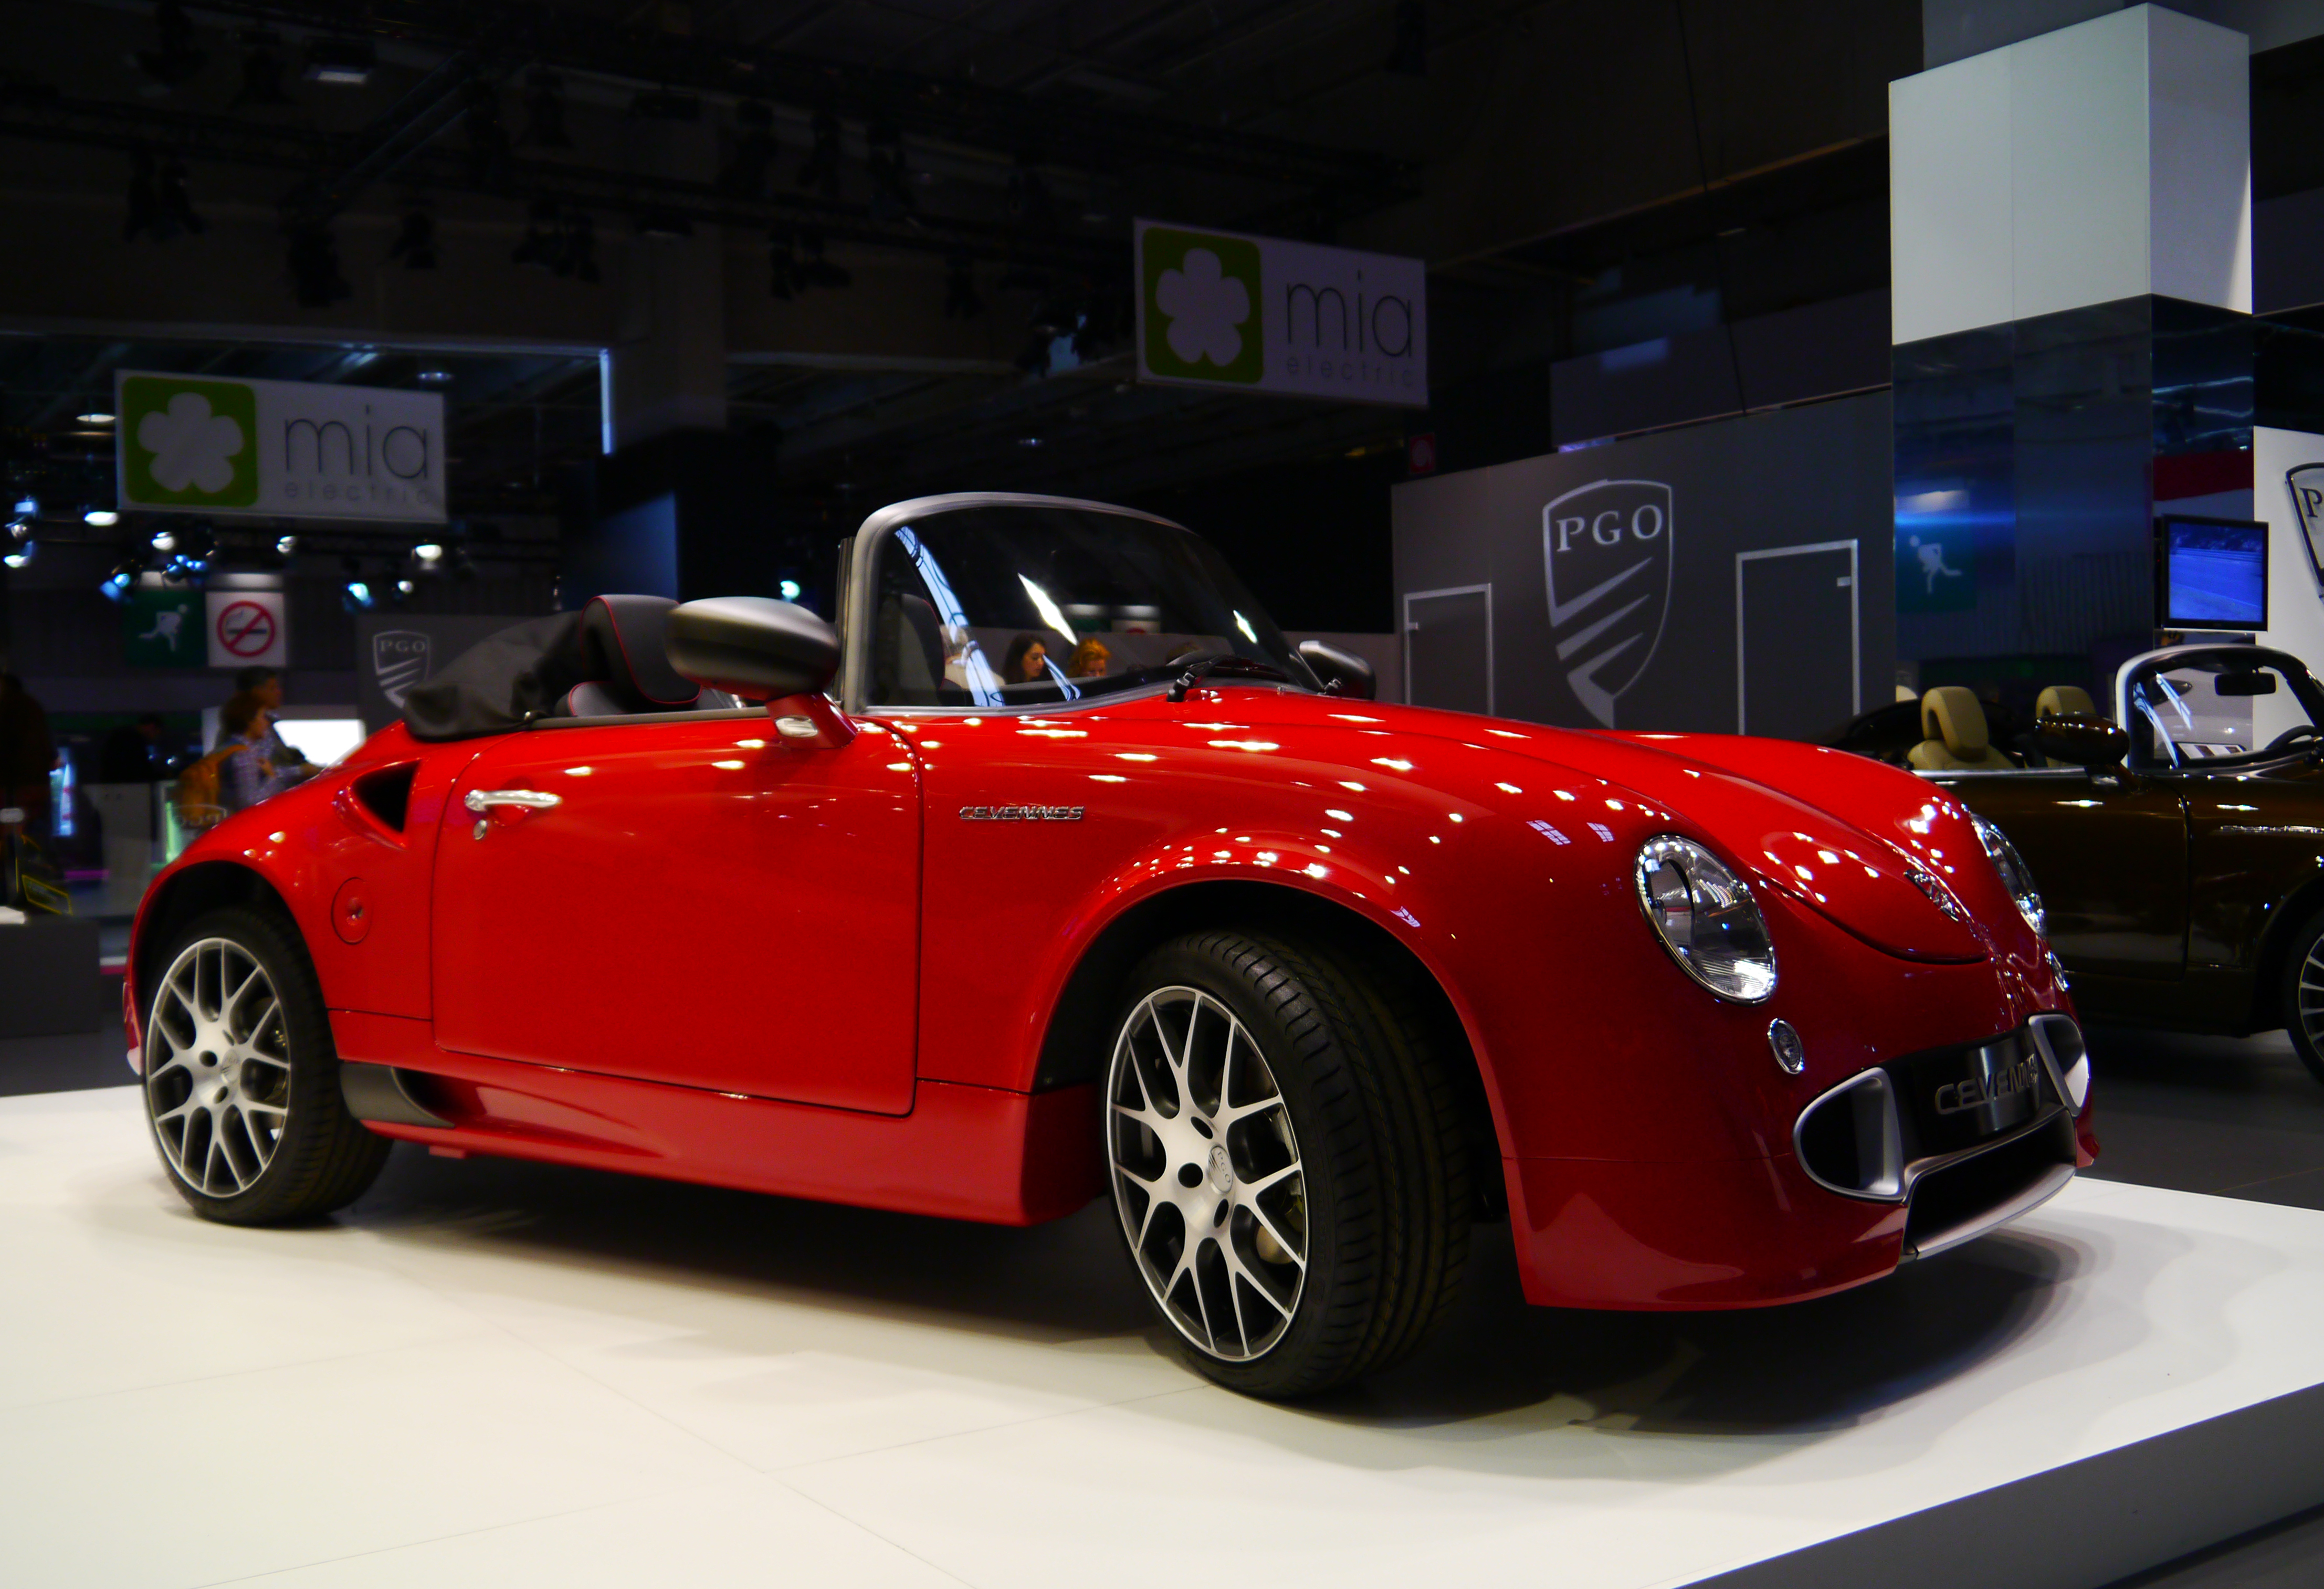 fichier mondial de l 39 automobile 2012 paris france 8649955582 jpg wikip dia. Black Bedroom Furniture Sets. Home Design Ideas